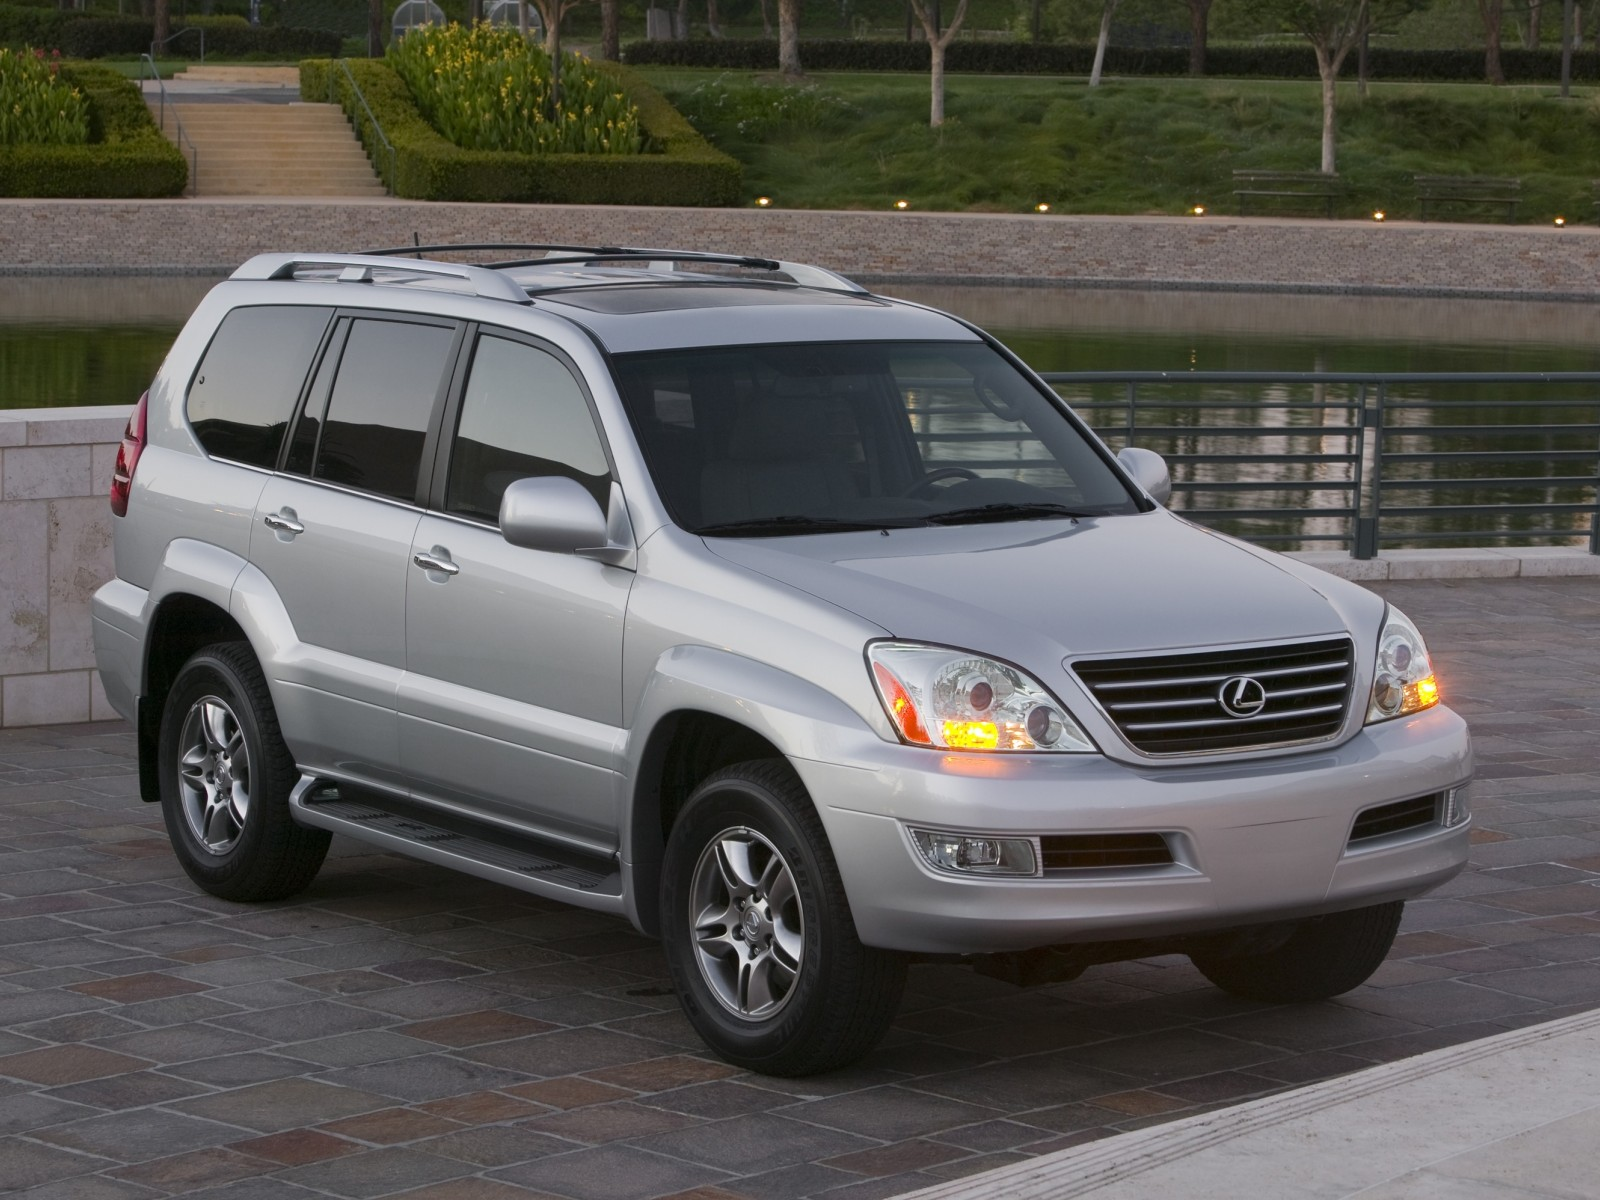 Technical Specifications. Make: Lexus Model: GX 470